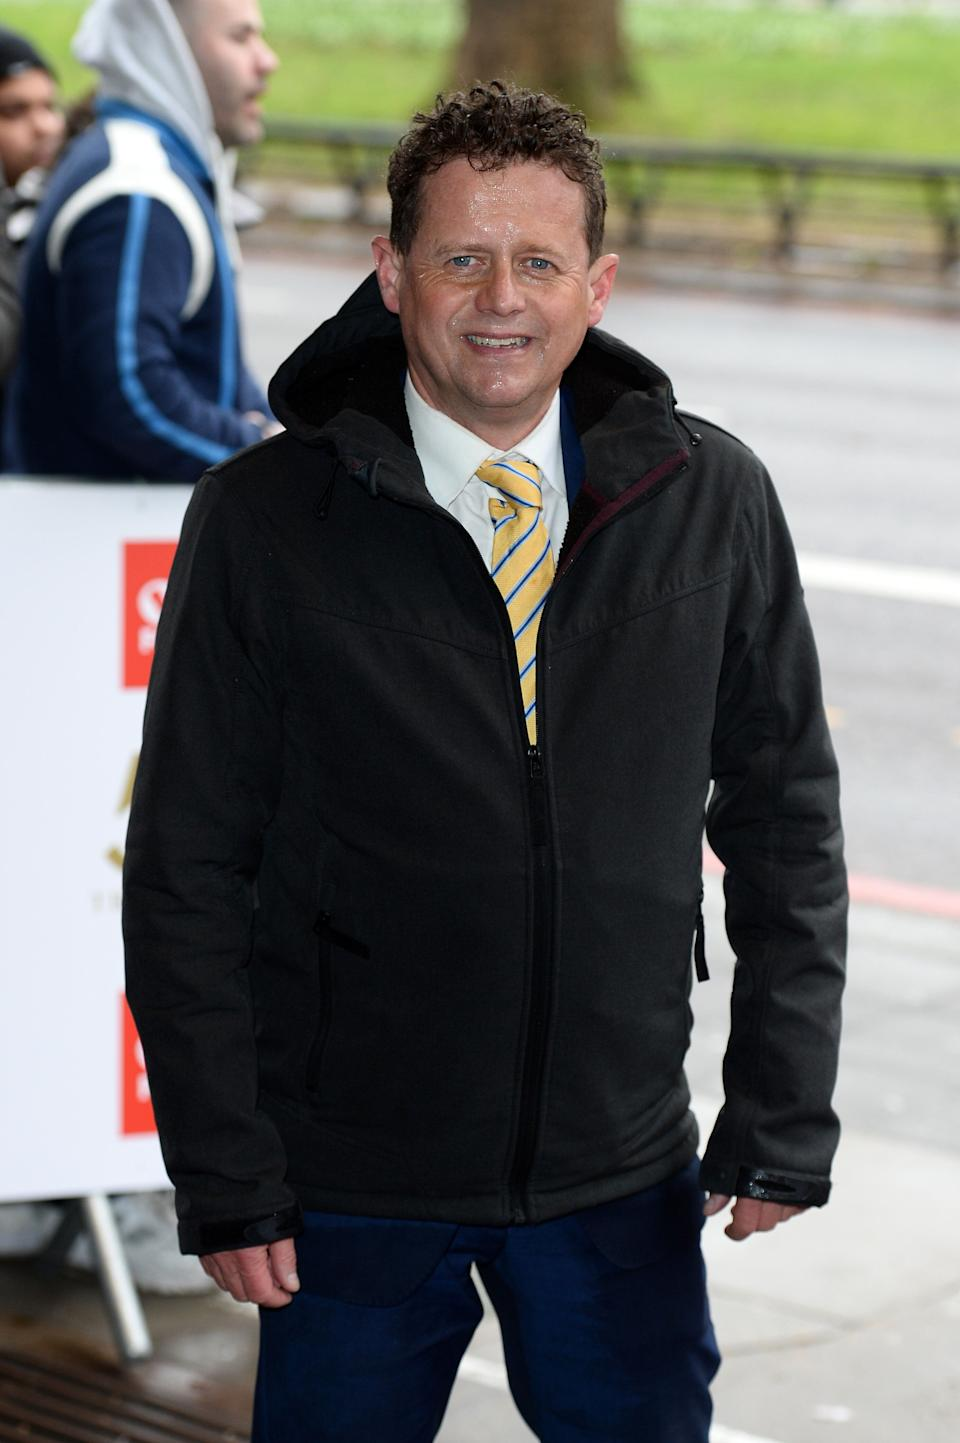 """Next to be confirmed for the line-up was sports presenter Mike Bushell, who is probably best known as a member of the BBC Breakfast team.<br /><br />He follows past and present Breakfast colleagues including Bill Turnbull, Susanna Reid, Naga Munchetty, Carol Kirkwood and former winner Chris Hollins onto the hit ballroom show.<br /><br />Mike said: """"I may have tried and profiled over 500 sports over the years in my Saturday morning BBC Breakfast slot but think the Strictly challenge could be the greatest. Bring on the glitter!"""""""